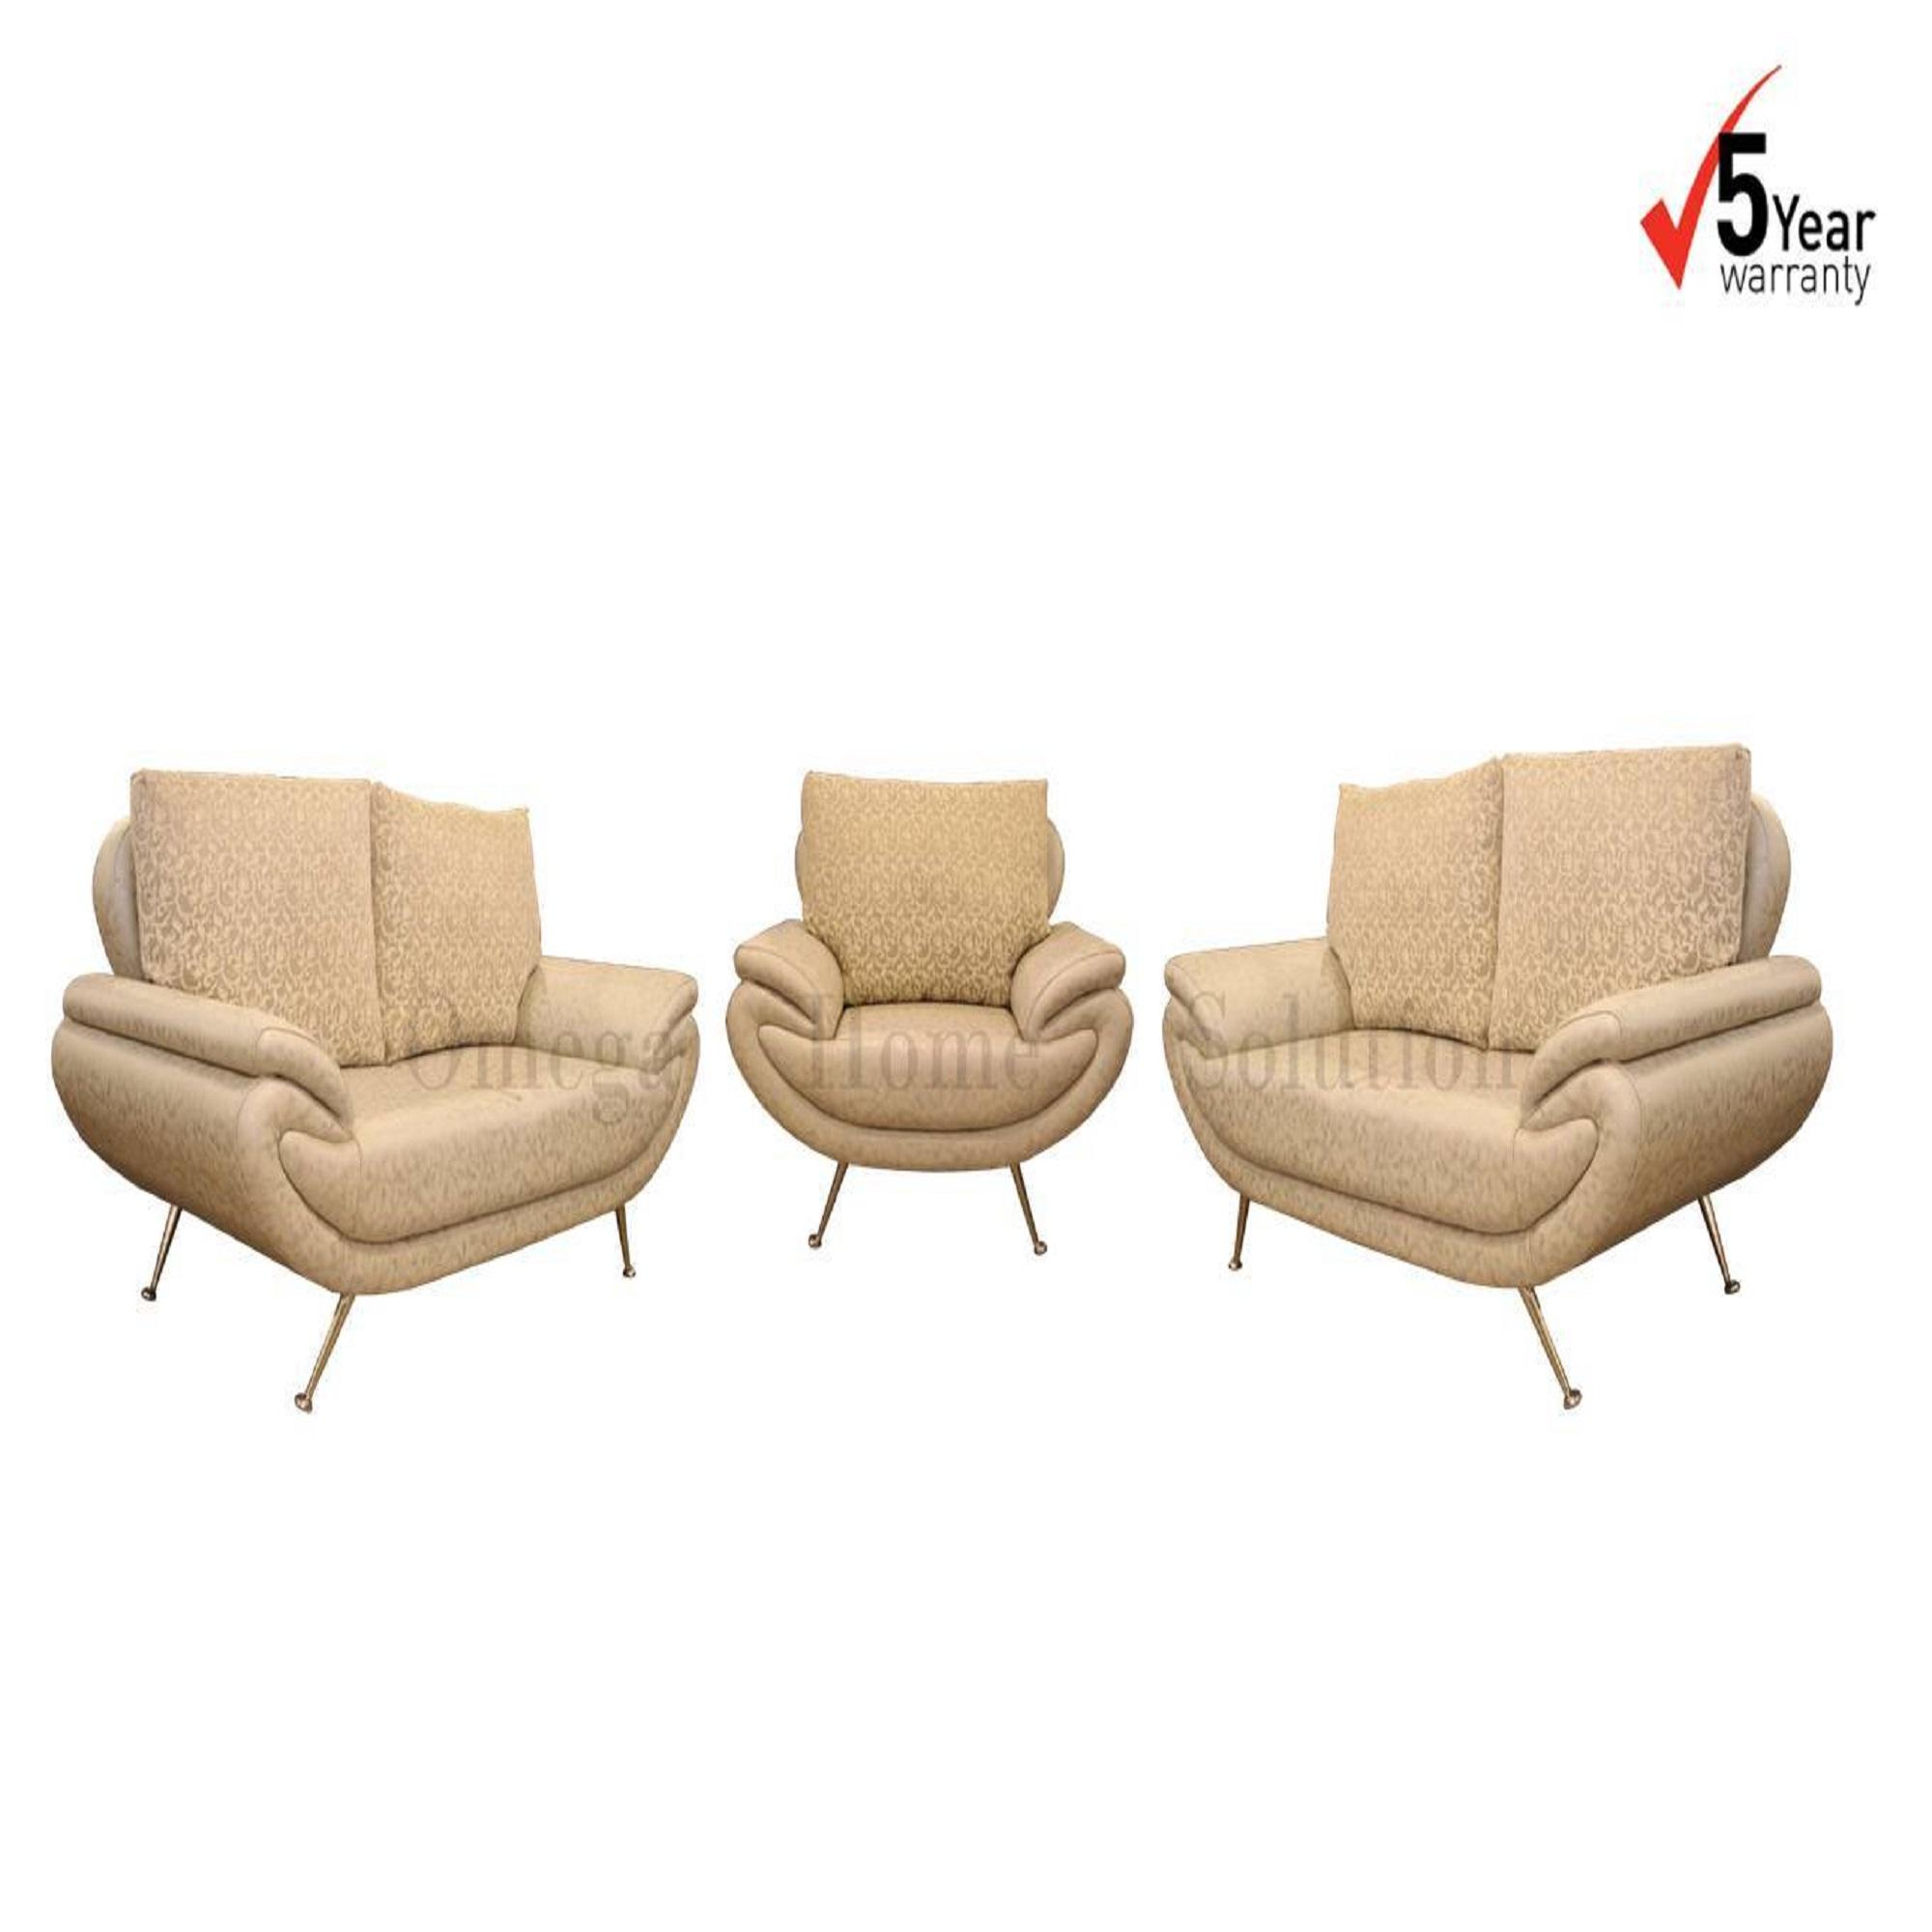 china sofas online black fabric sectional sofa set buy omega home solution at best prices in